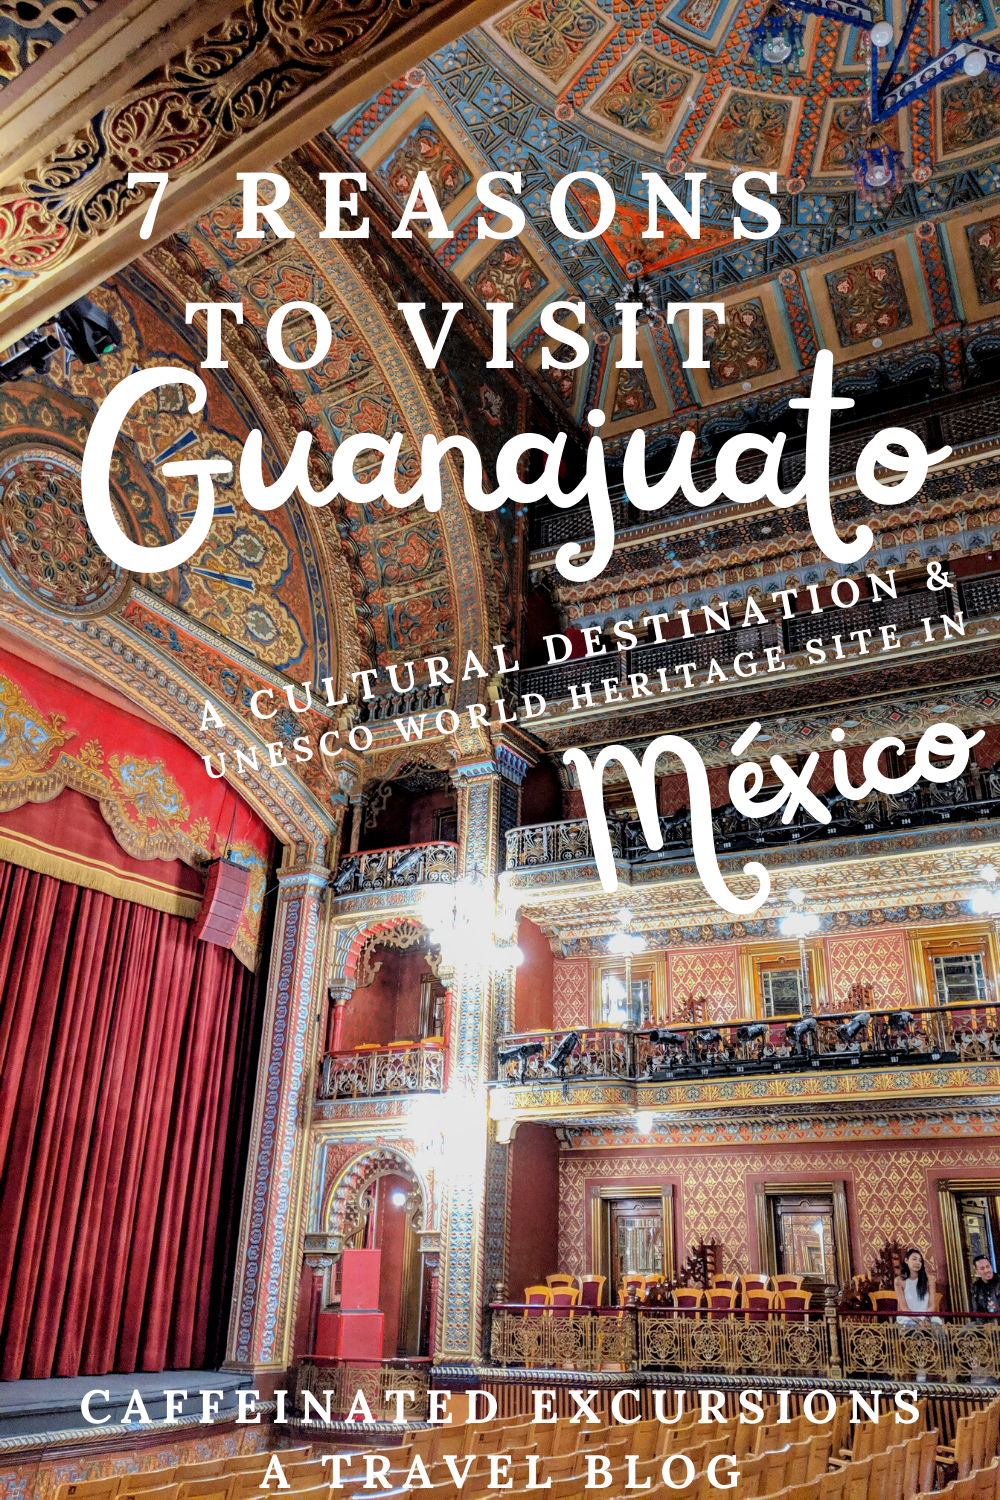 If you're interested in visiting a cultural destination in Mexico, be sure to consider Guanajuato! Although this small city has no beaches nearby, its charming historic center with colonial architecture is sure to delight visitors. It's easy to see why this town was desginated a UNESCO World Heritage Site in 1988! Curious? Check out this blog post to learn more!